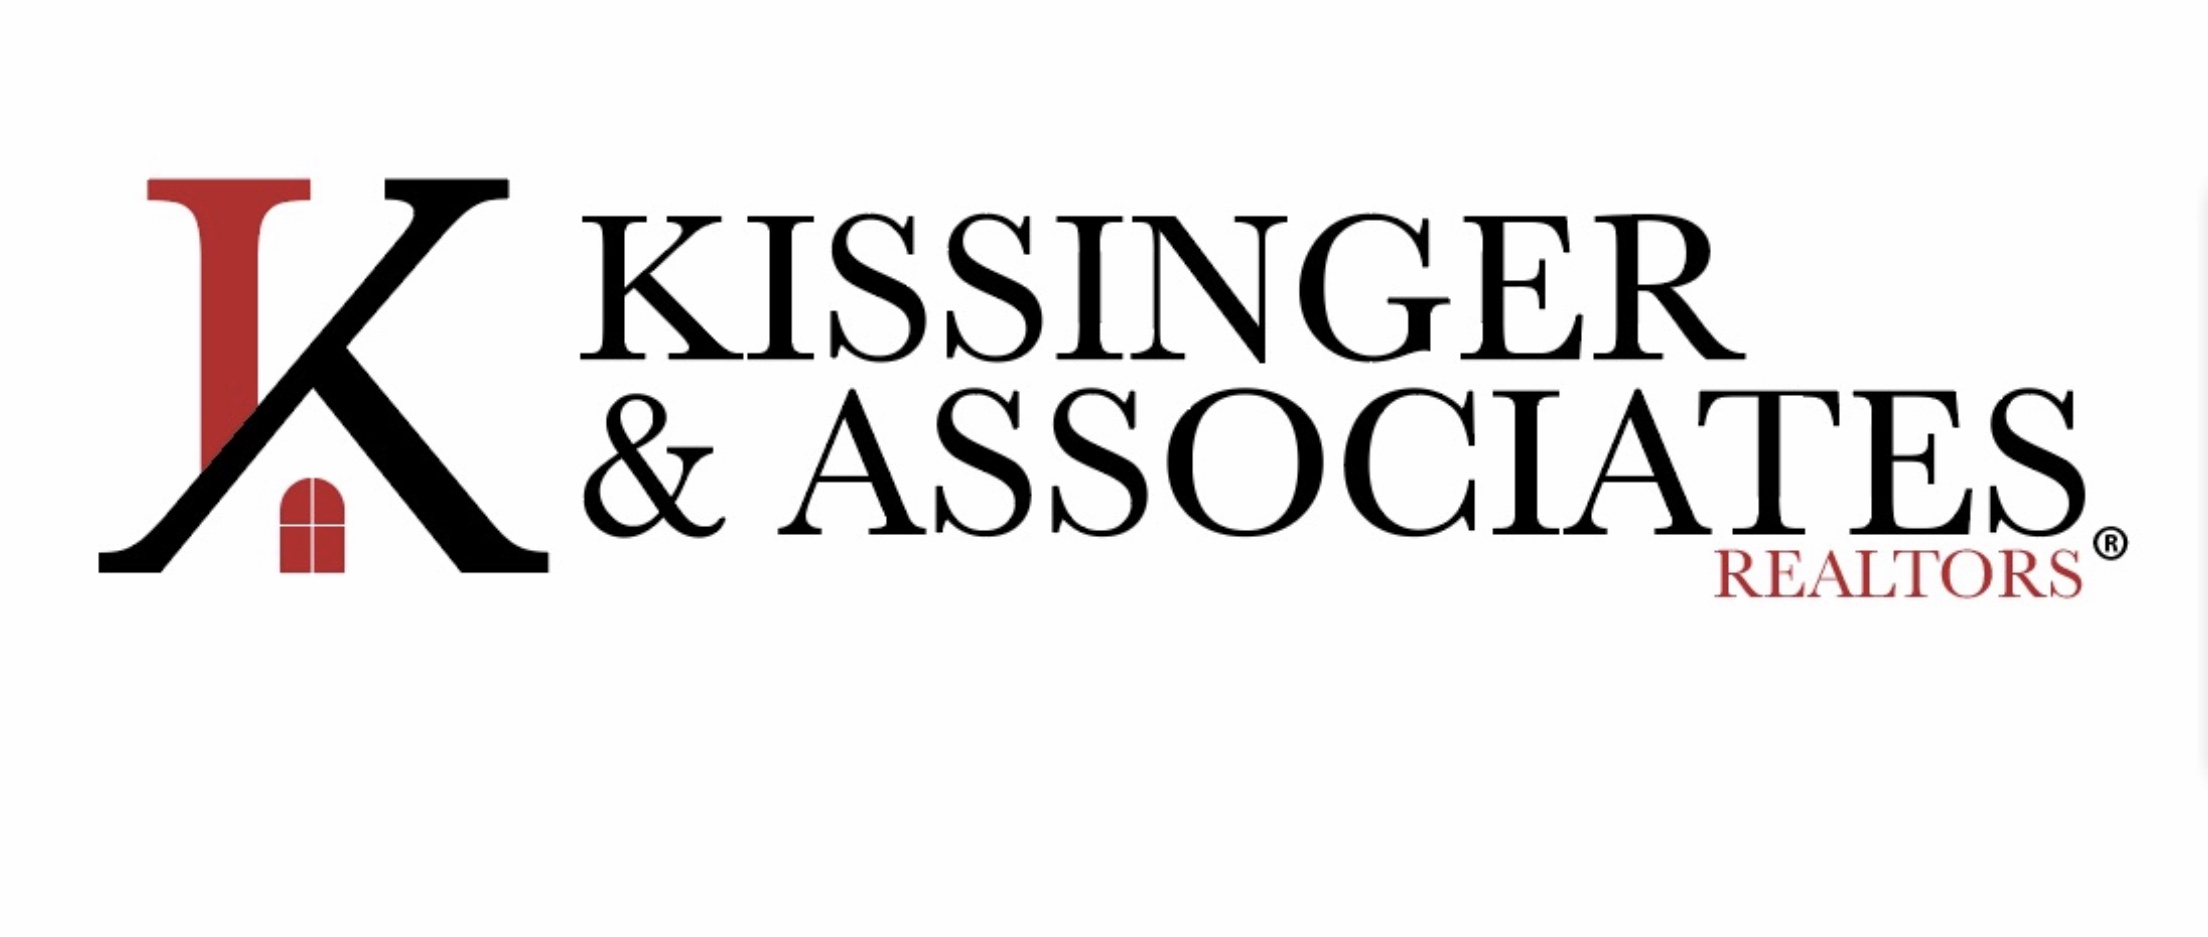 Kissinger & Associates REALTORs